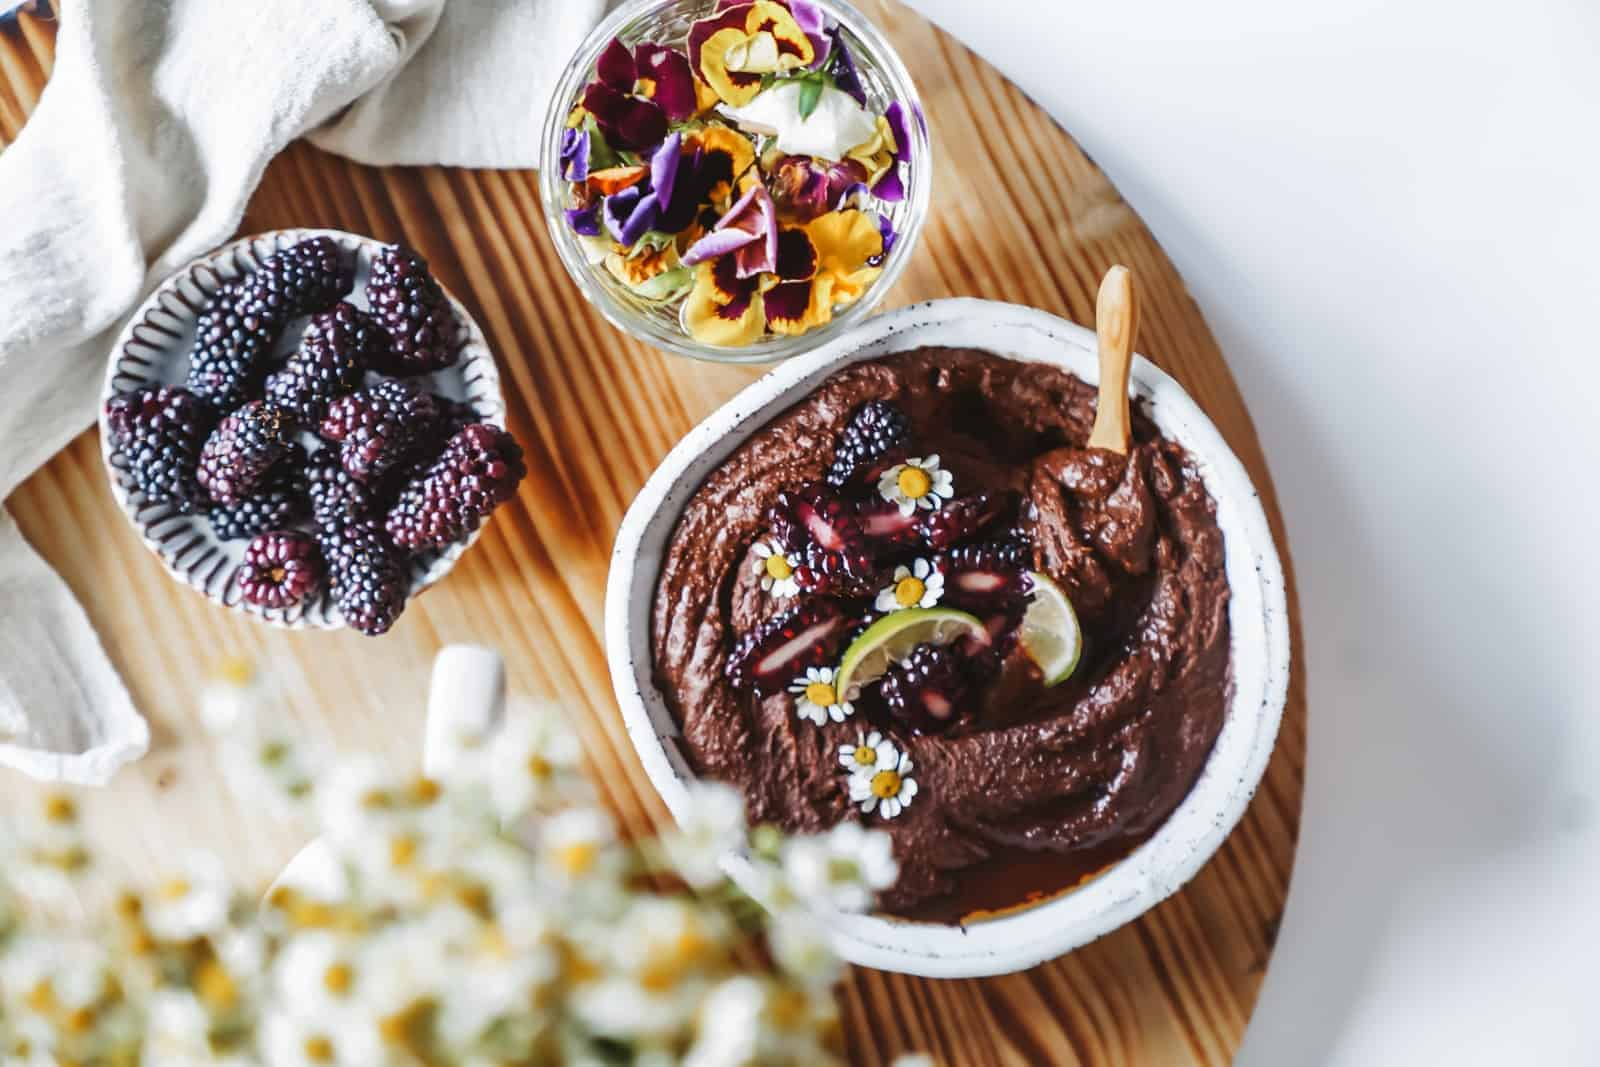 Chickpea Dessert chocolate sauce on a board with fresh fruit and flowers